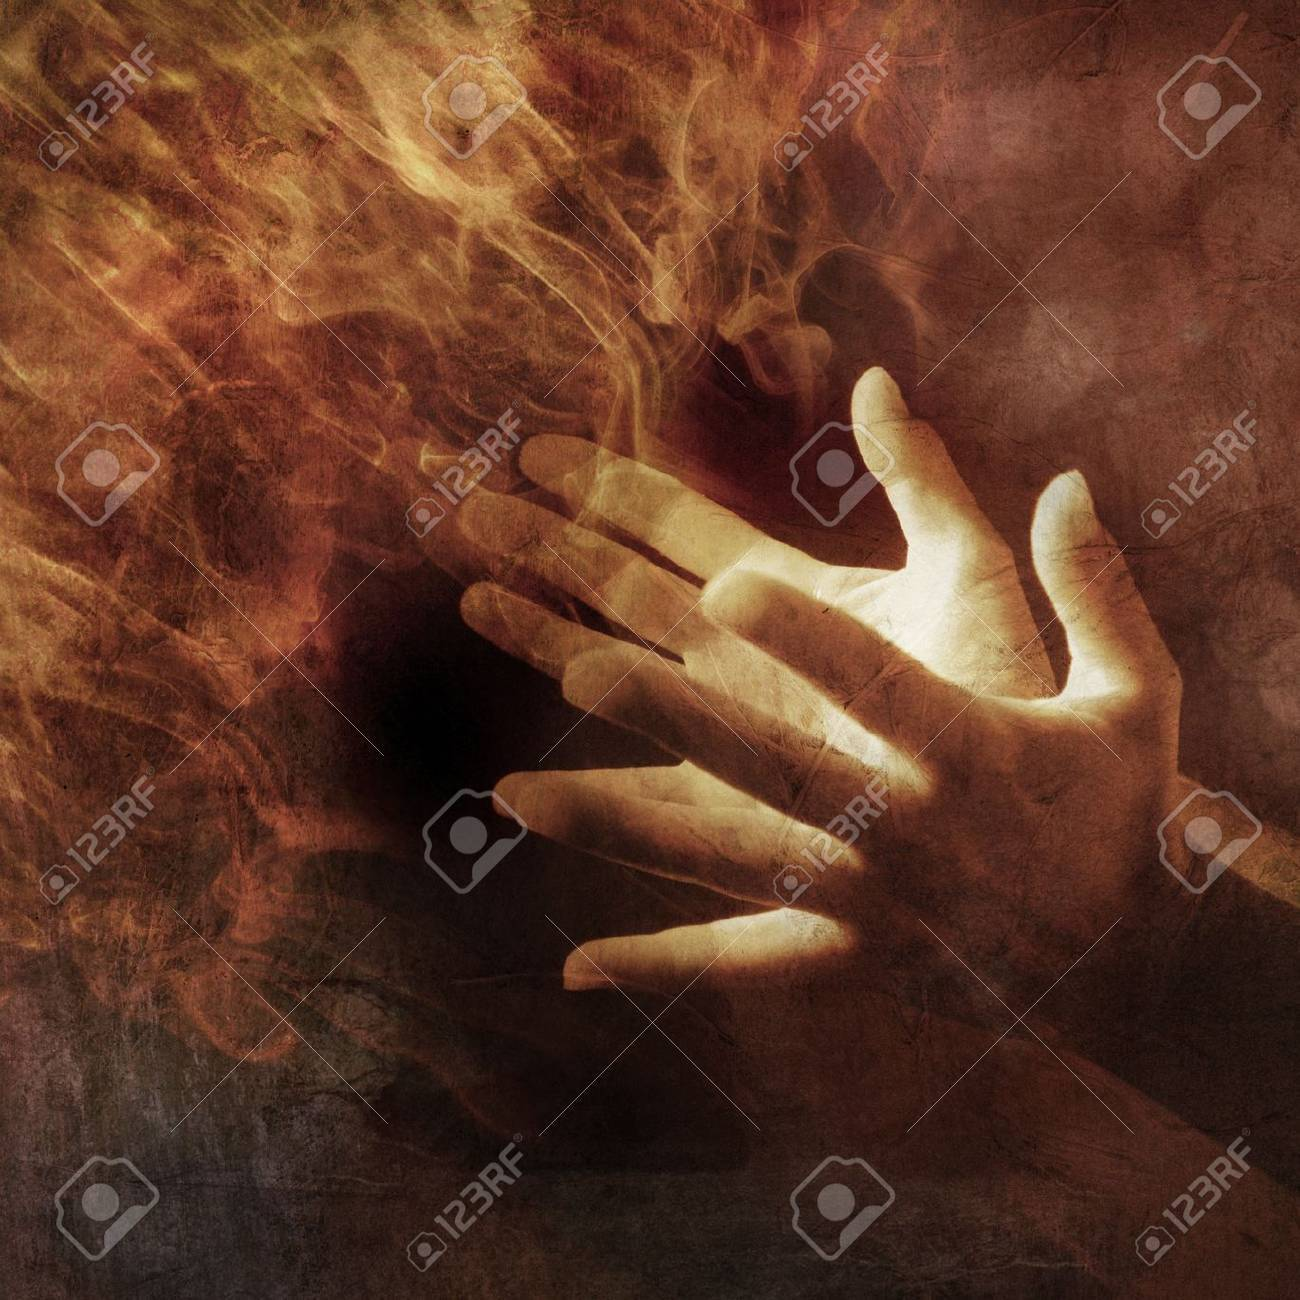 Hands lit up with energy light. Photo based illustration. - 5169118